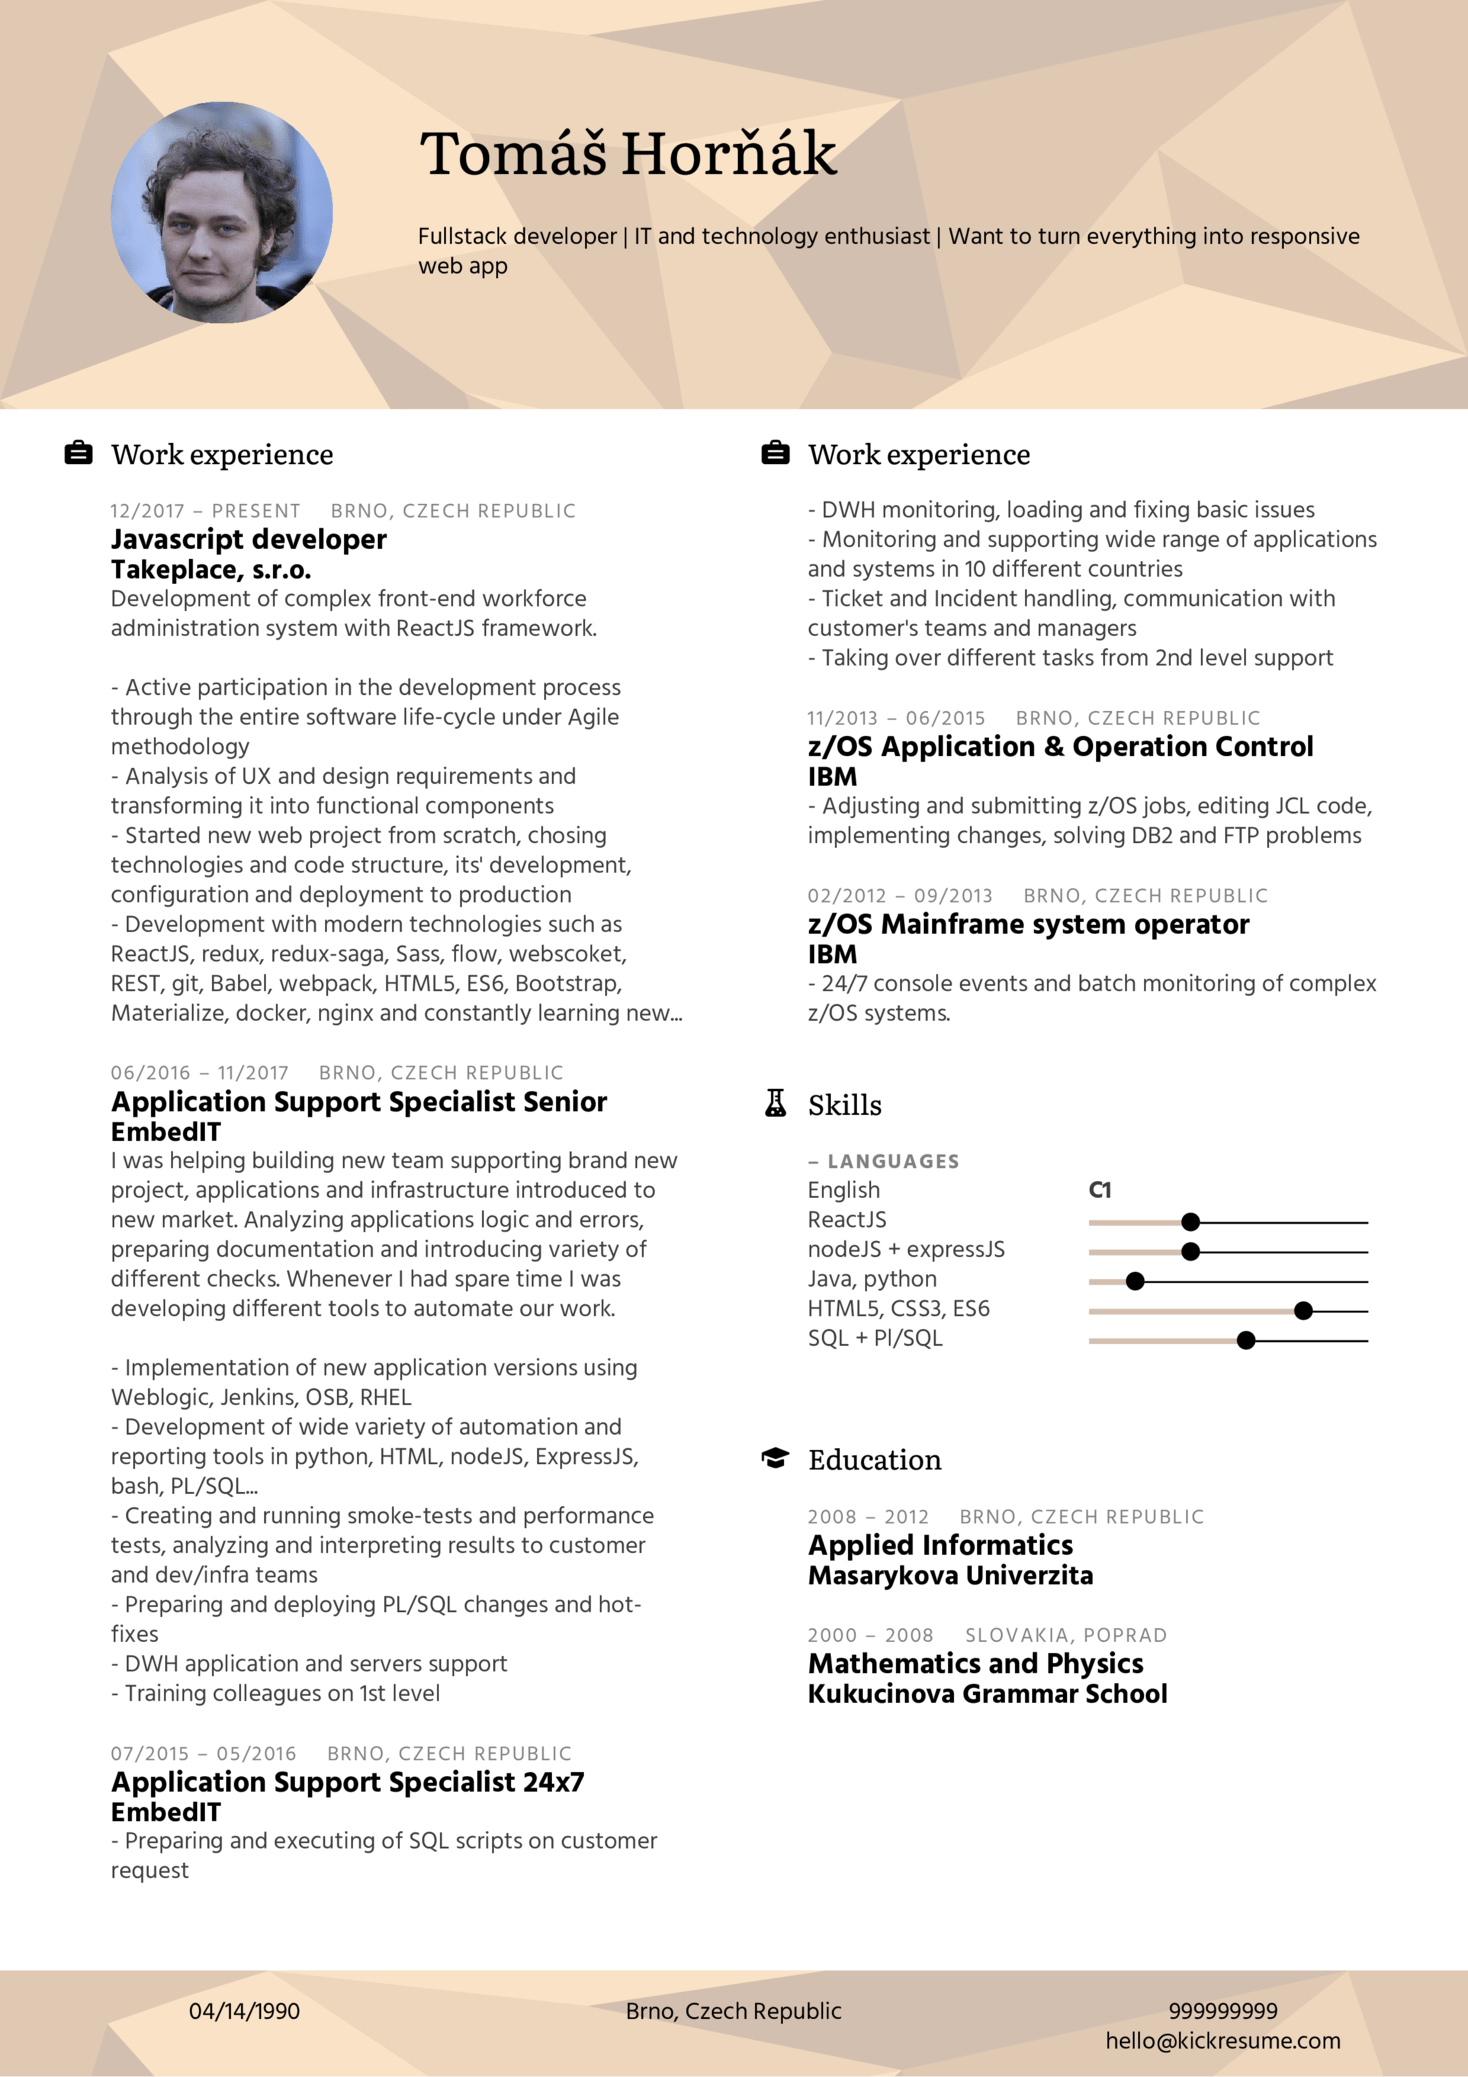 resume examples by real people  takeplace java script web developer resume example